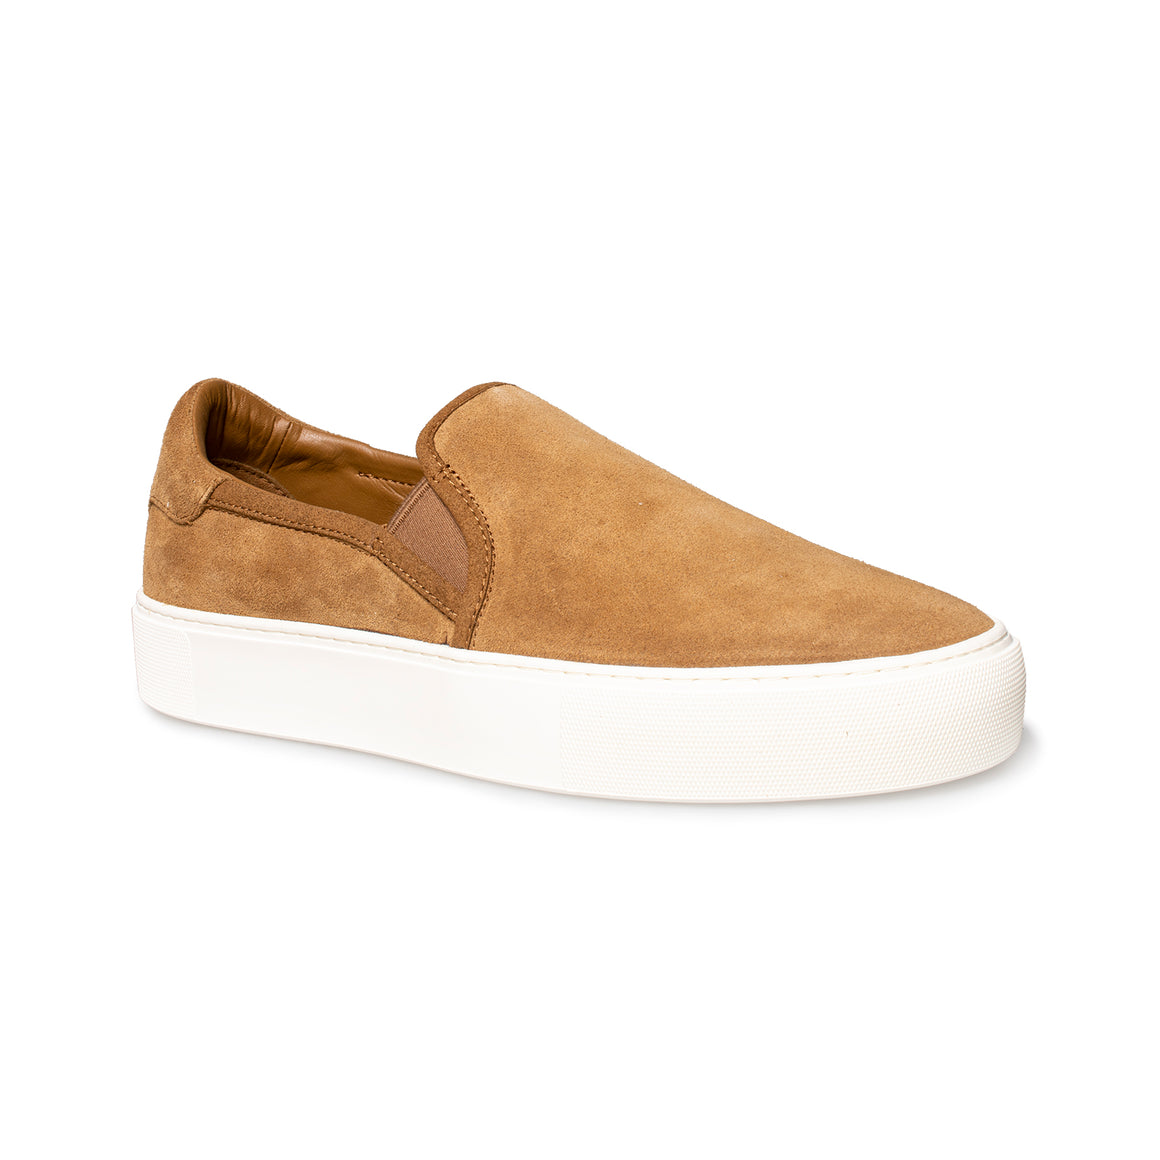 UGG Jass Chestnut Shoe's - Womens